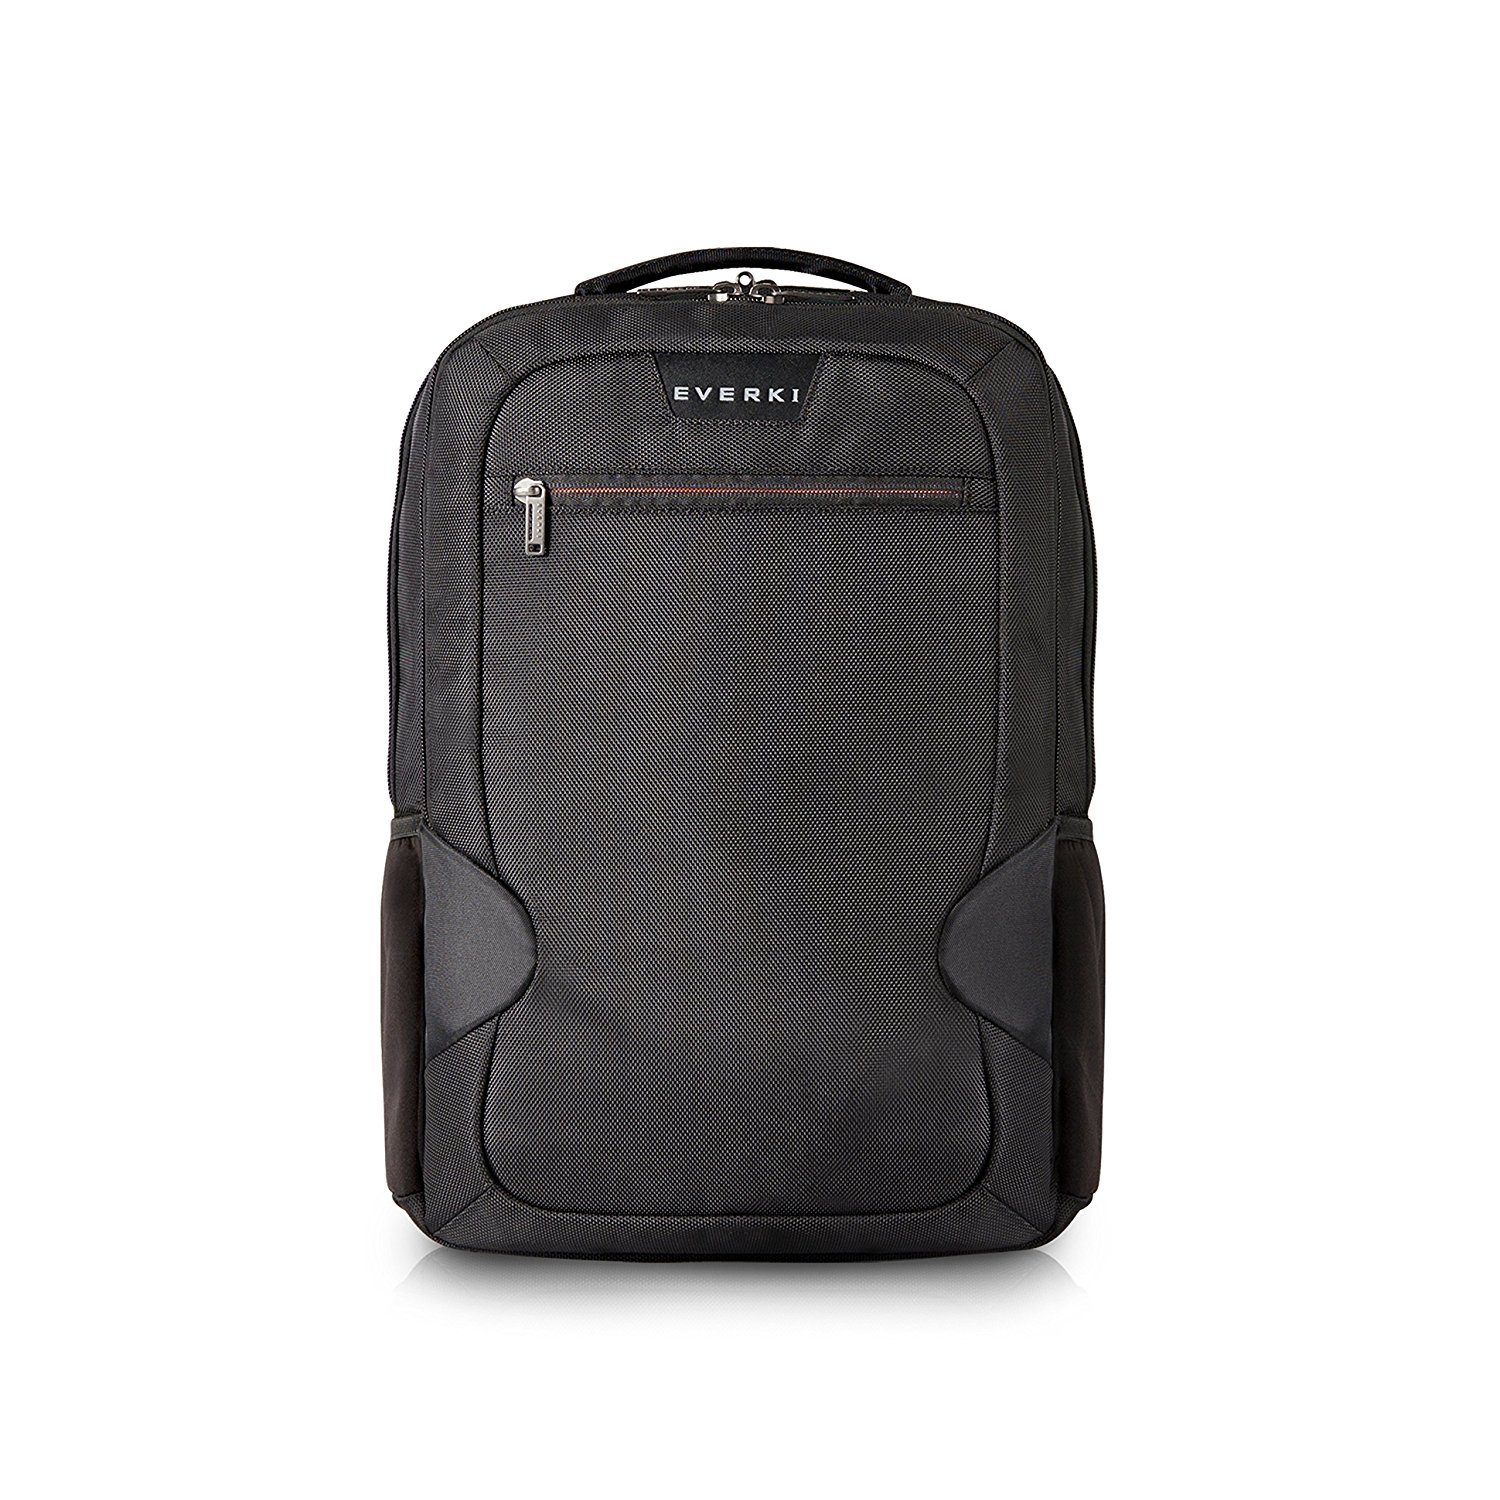 Best laptop backpack for women 3